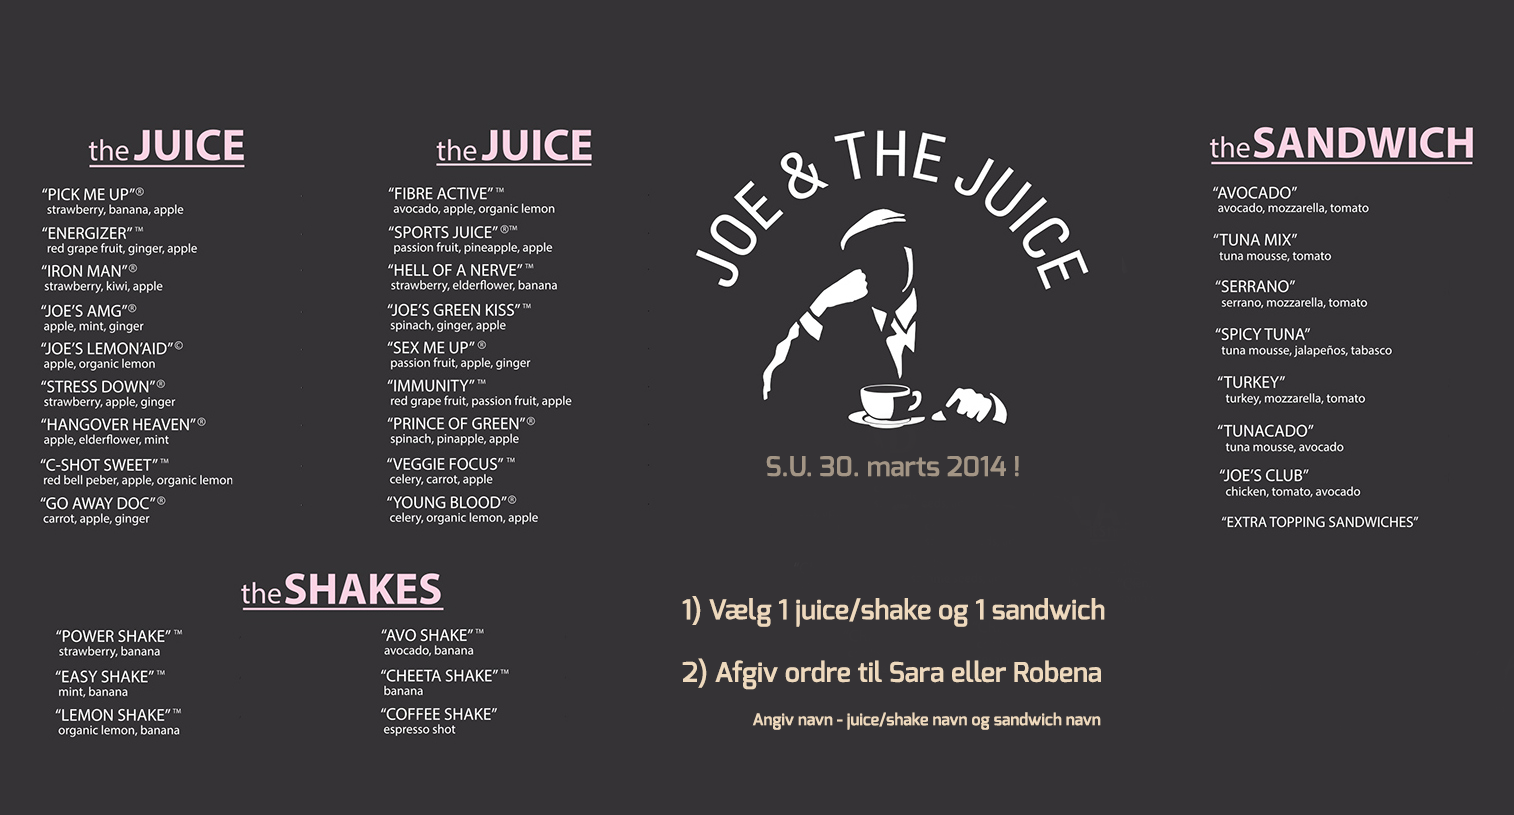 Joe and the juice sandwich